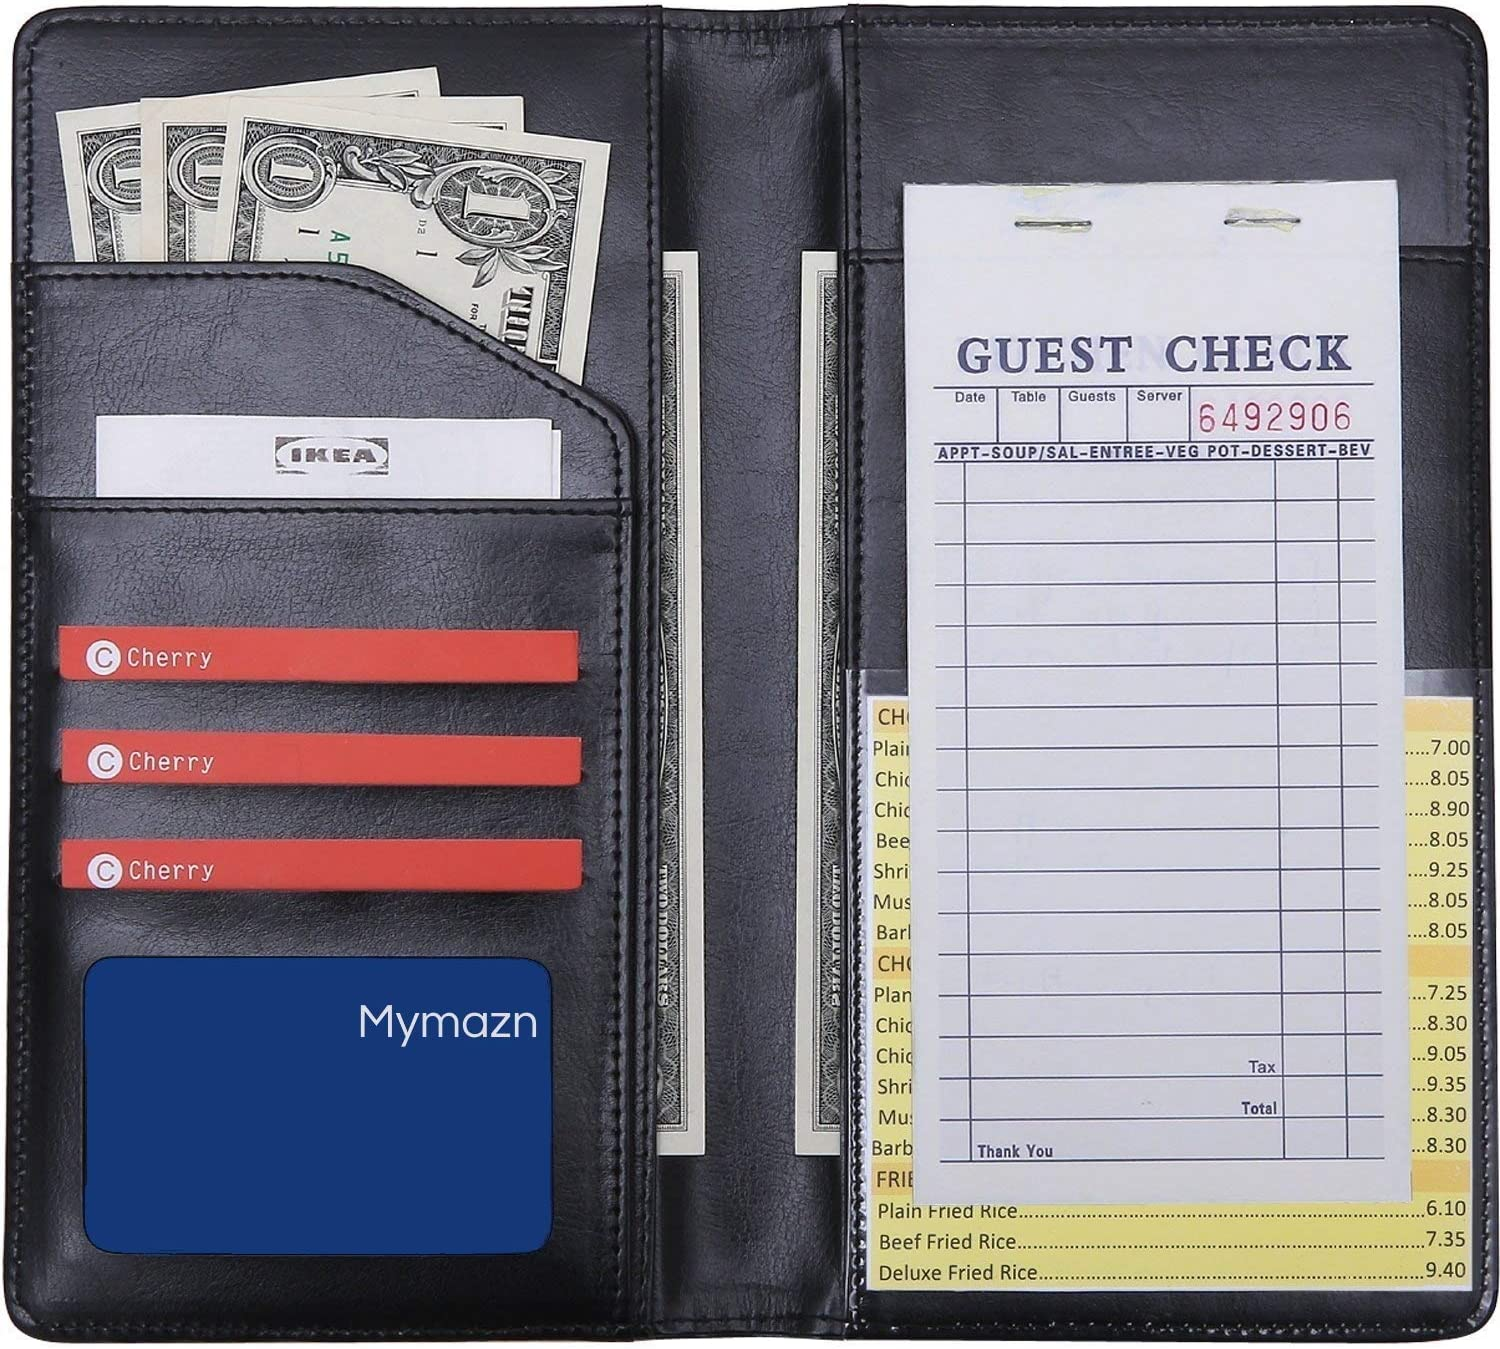 "5"" x 9"" Big Waiter Book Server Wallet Server Pads Waitress Book Long Restaurant Waitstaff Organizer, Guest Check Book Holder Money Pocket Big Size(Black) 81sI5T42hnL"